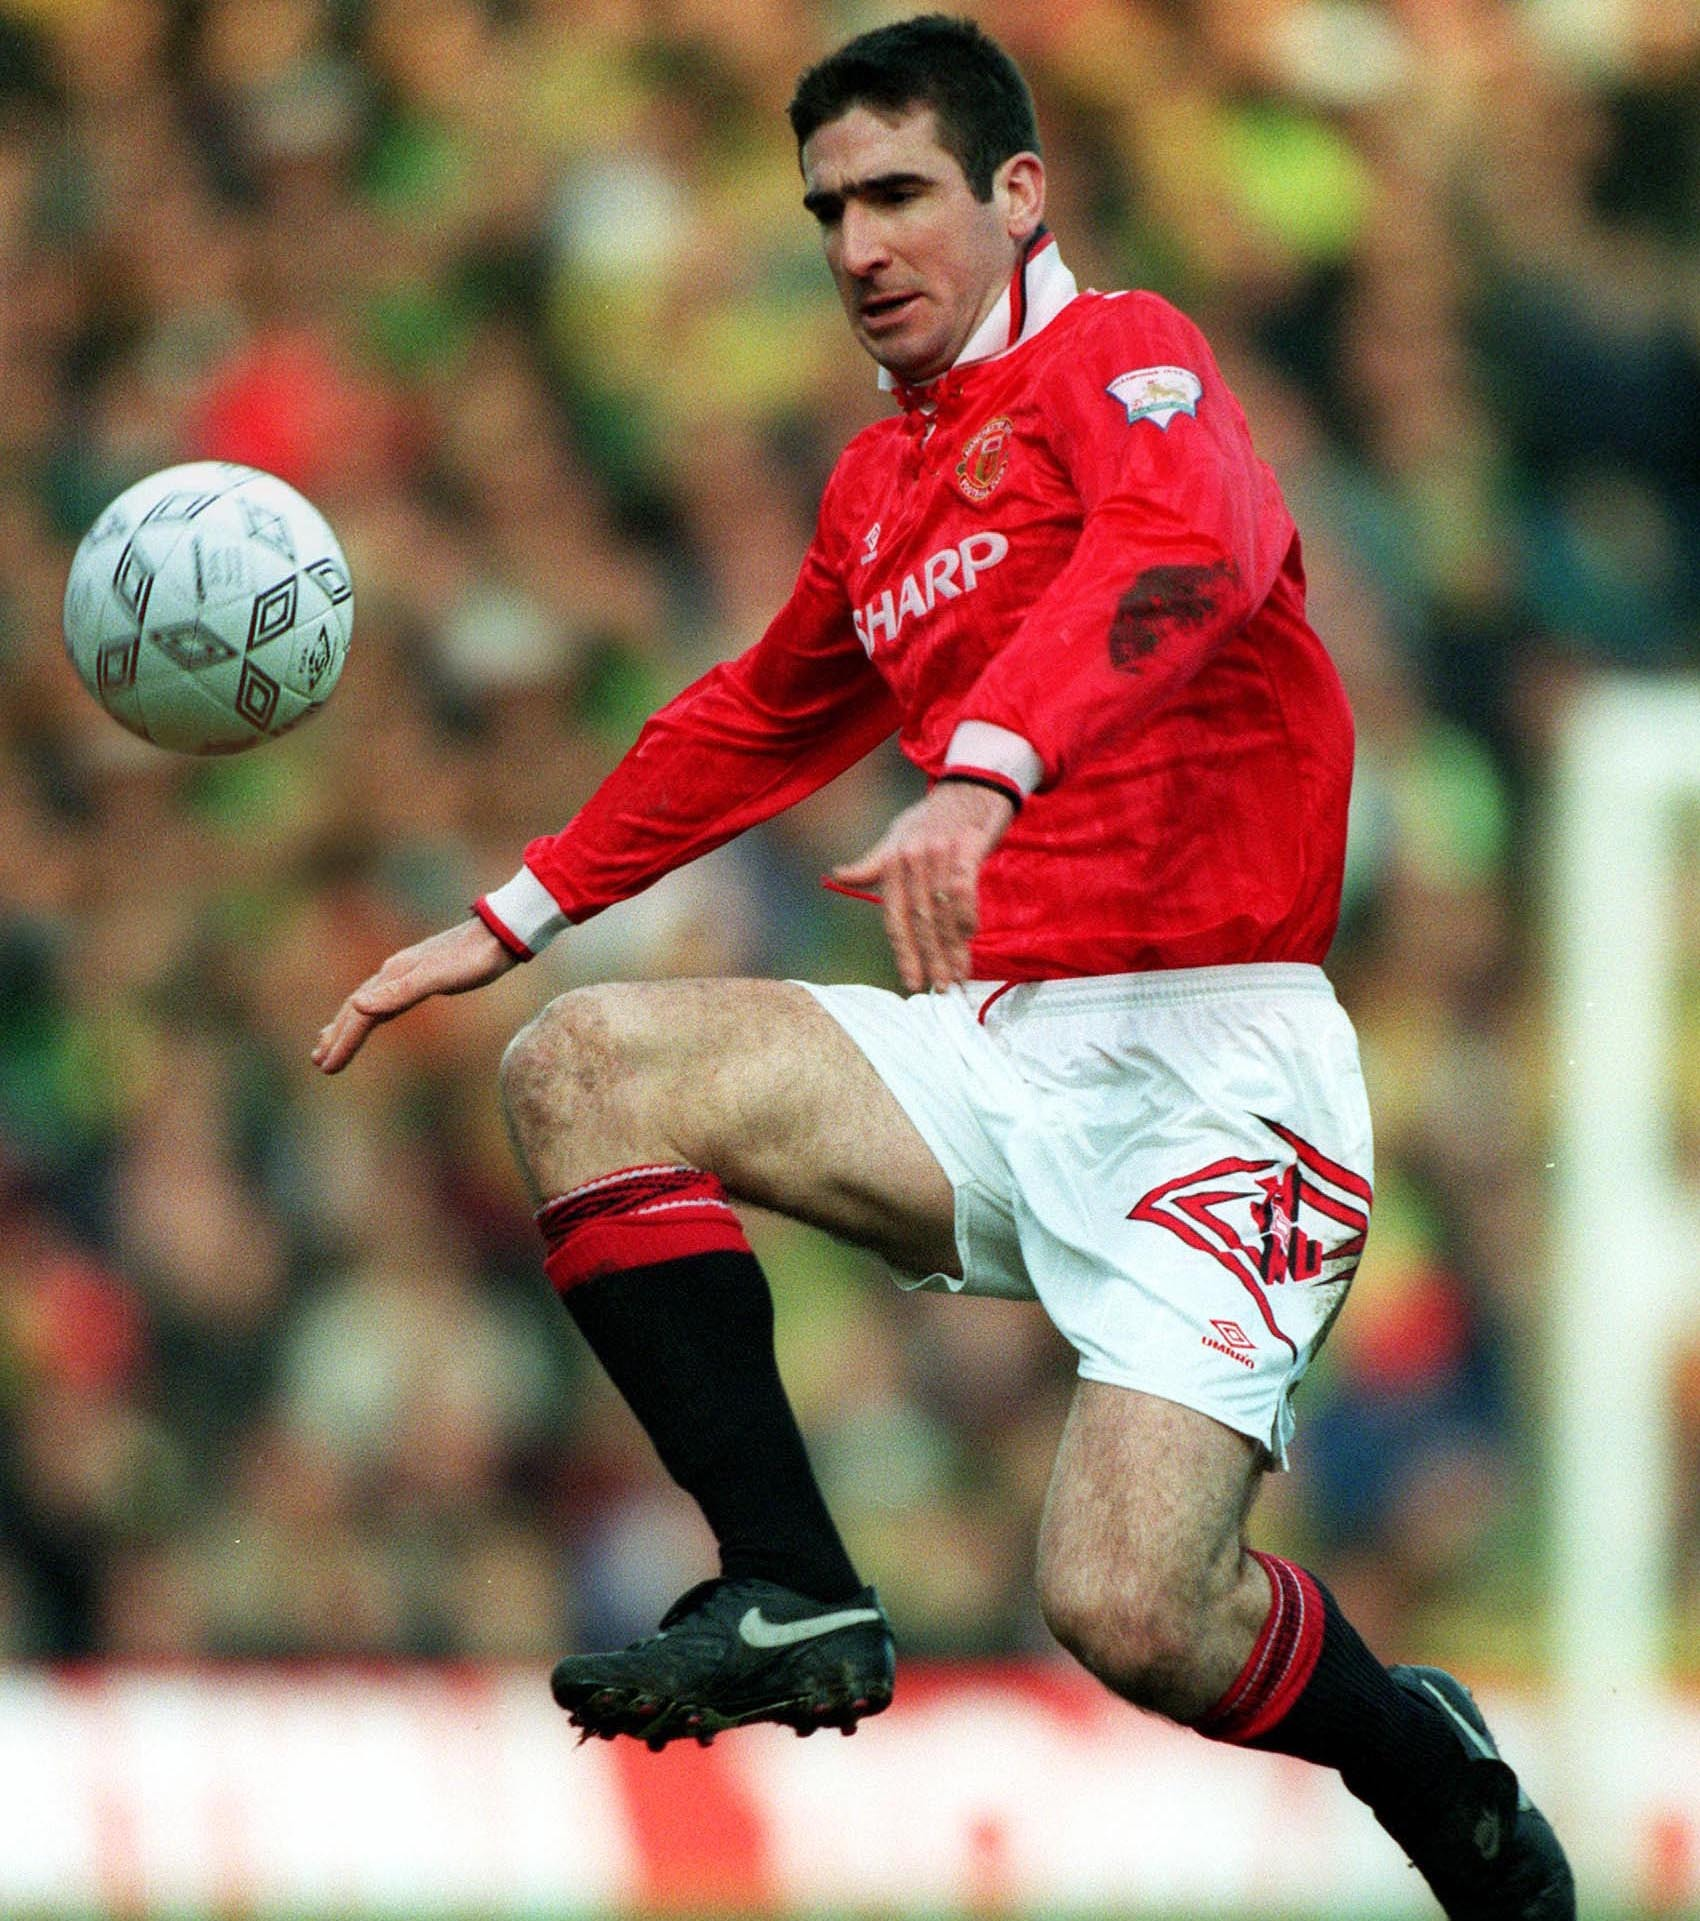 Born 24 may 1966) is a french actor, director, producer, and former professional footballer.he played for auxerre, martigues, marseille, bordeaux, montpellier, nîmes, and leeds united before ending his career at manchester united, where he won four premier league titles in five years and two league and fa cup. Premier League: Nasri succèdera-t-il à Cantona, Ginola et ...